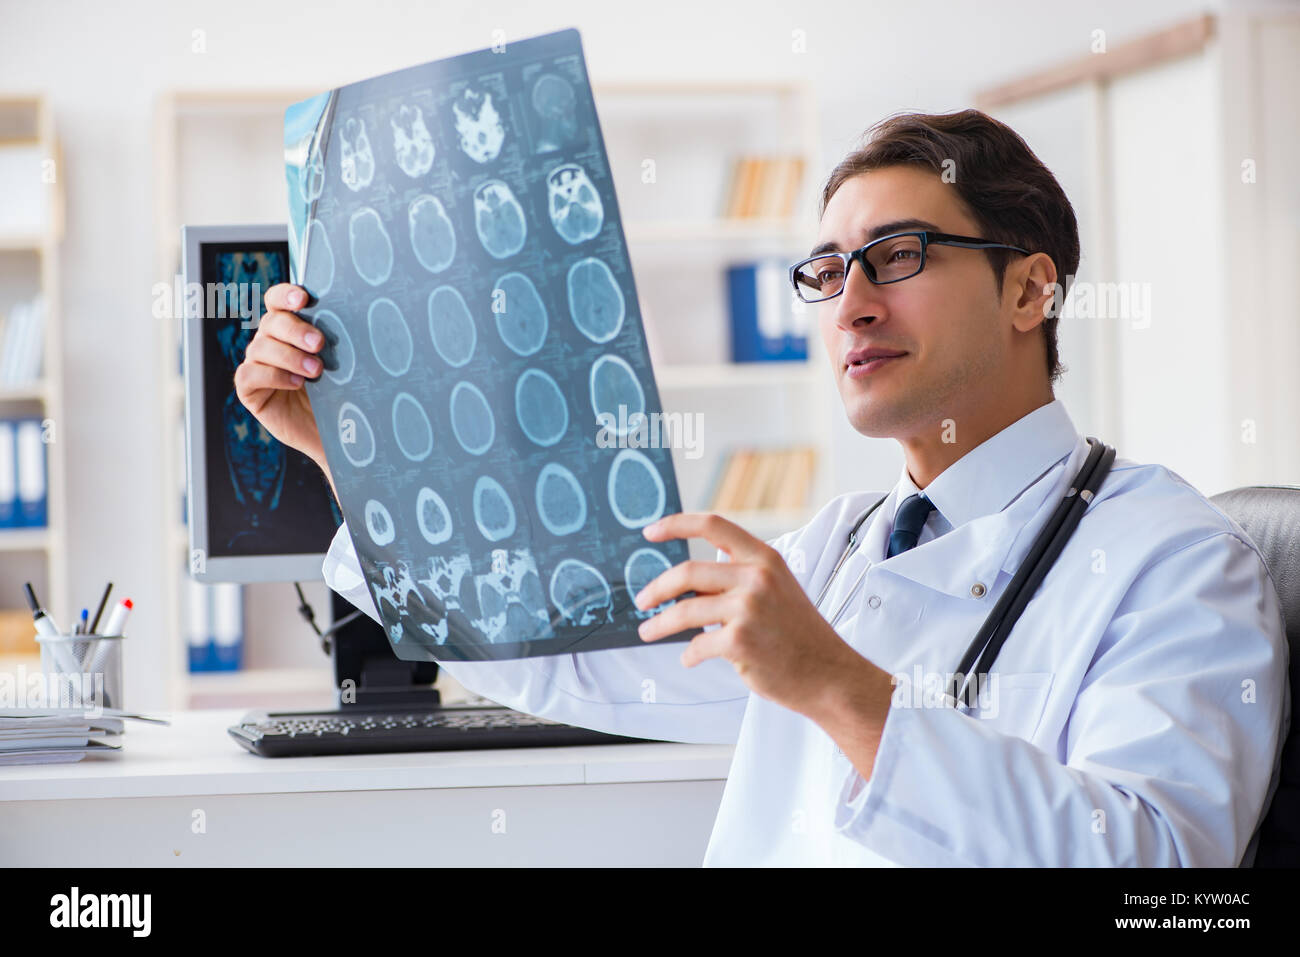 Doctor Radiologist Looking At X Ray Images Stock Photo 172038116